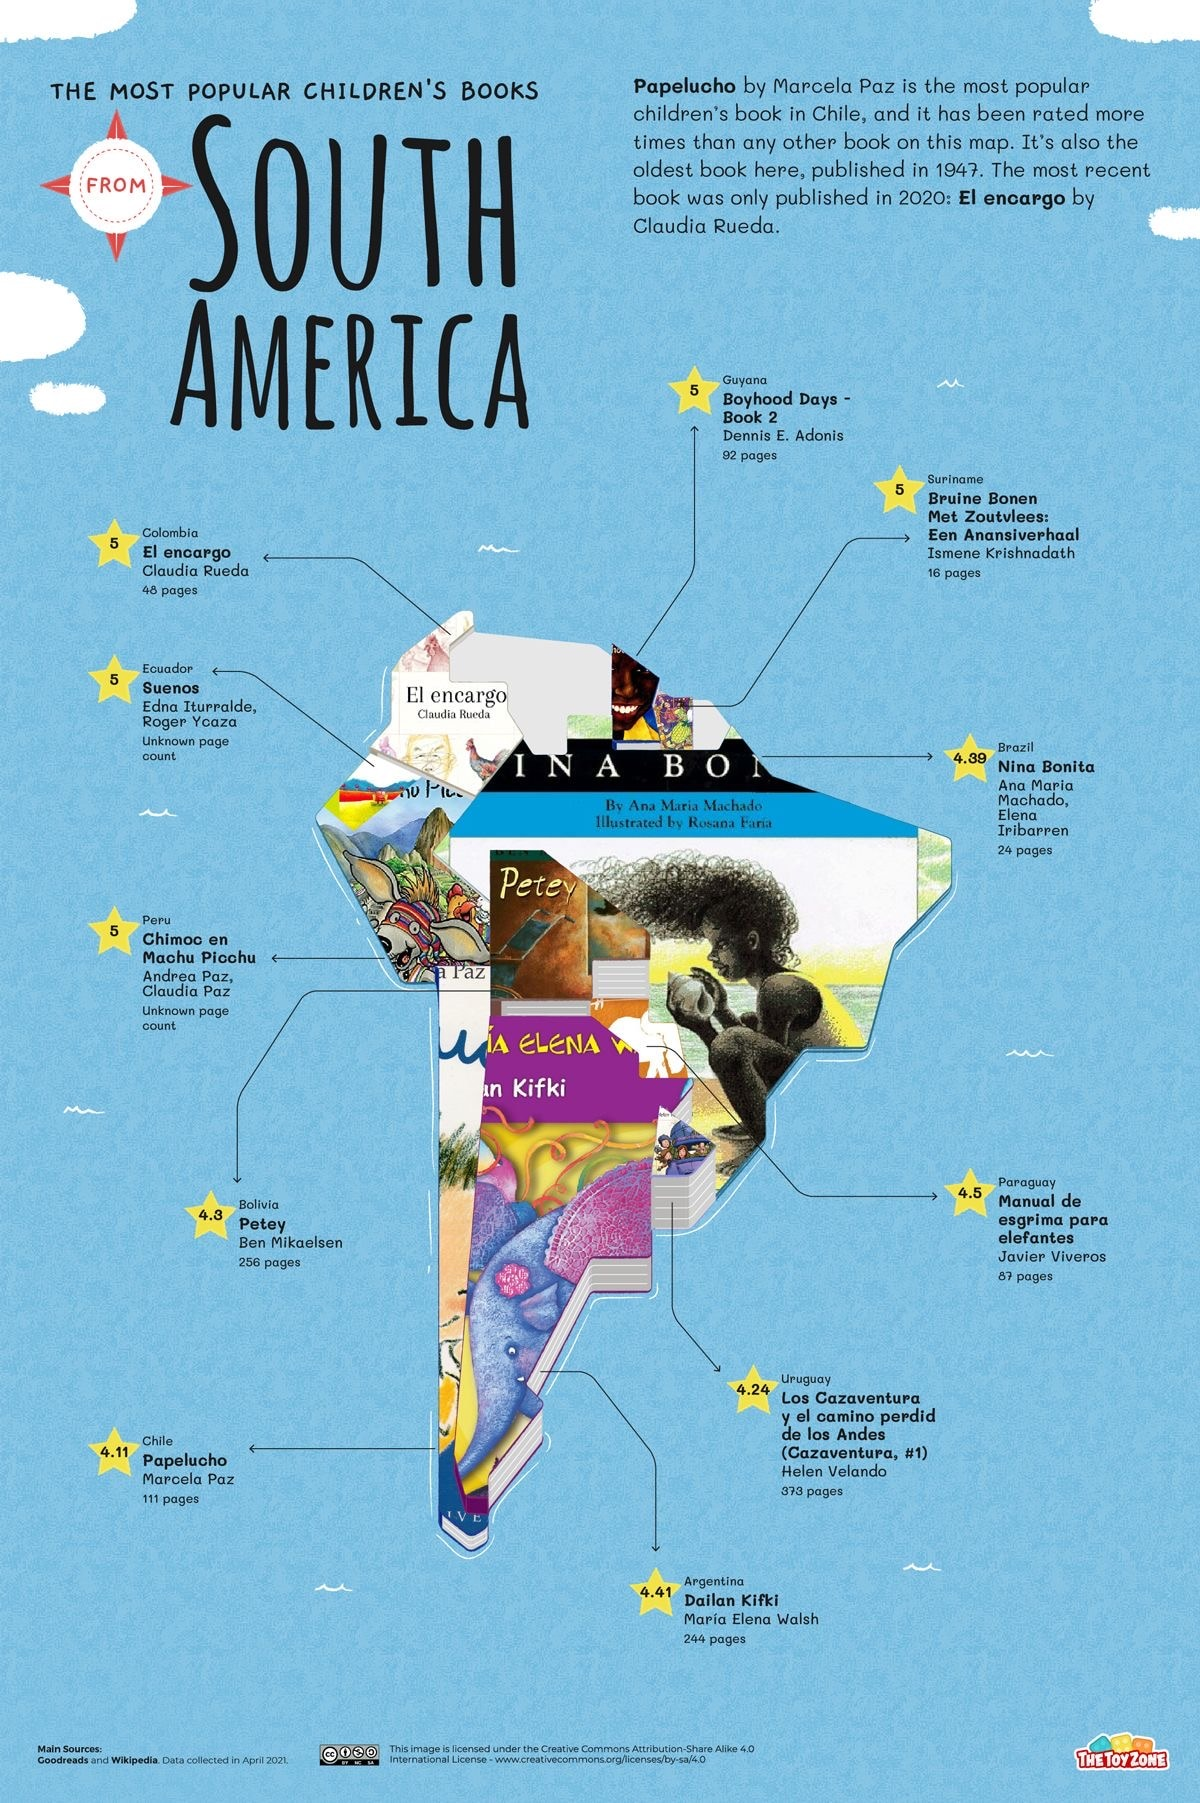 Most popular children's books from South America